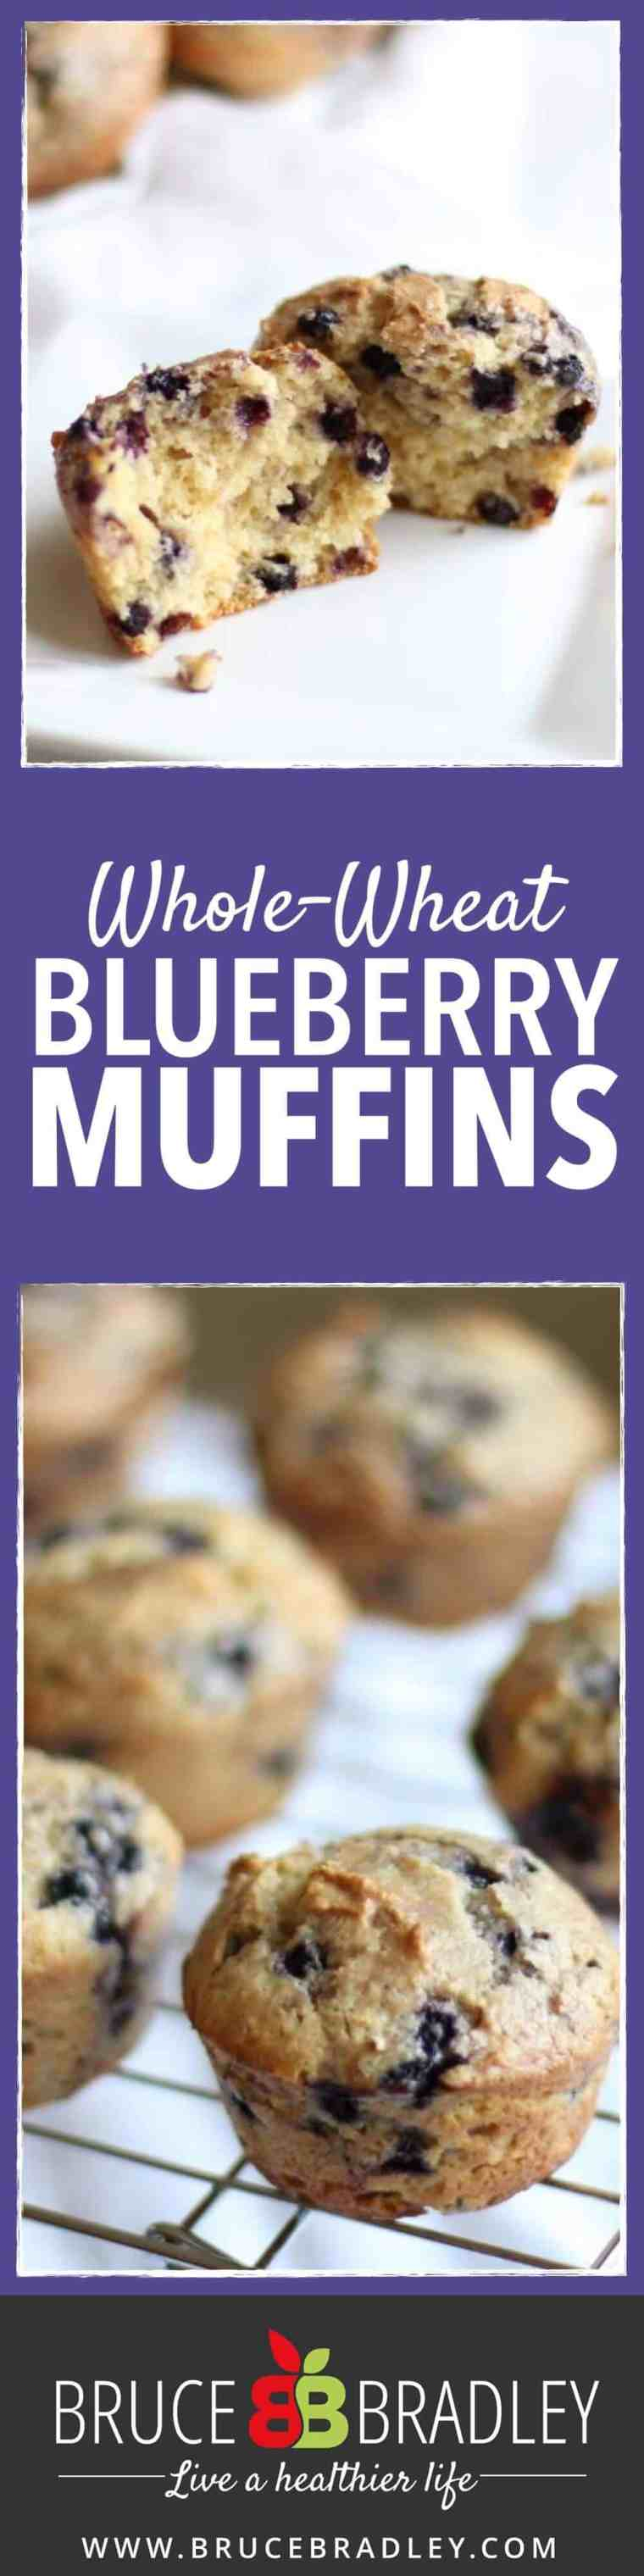 Bruce Bradley's Whole-Wheat Blueberry Muffin recipe is a delicious treat that uses real ingredients!